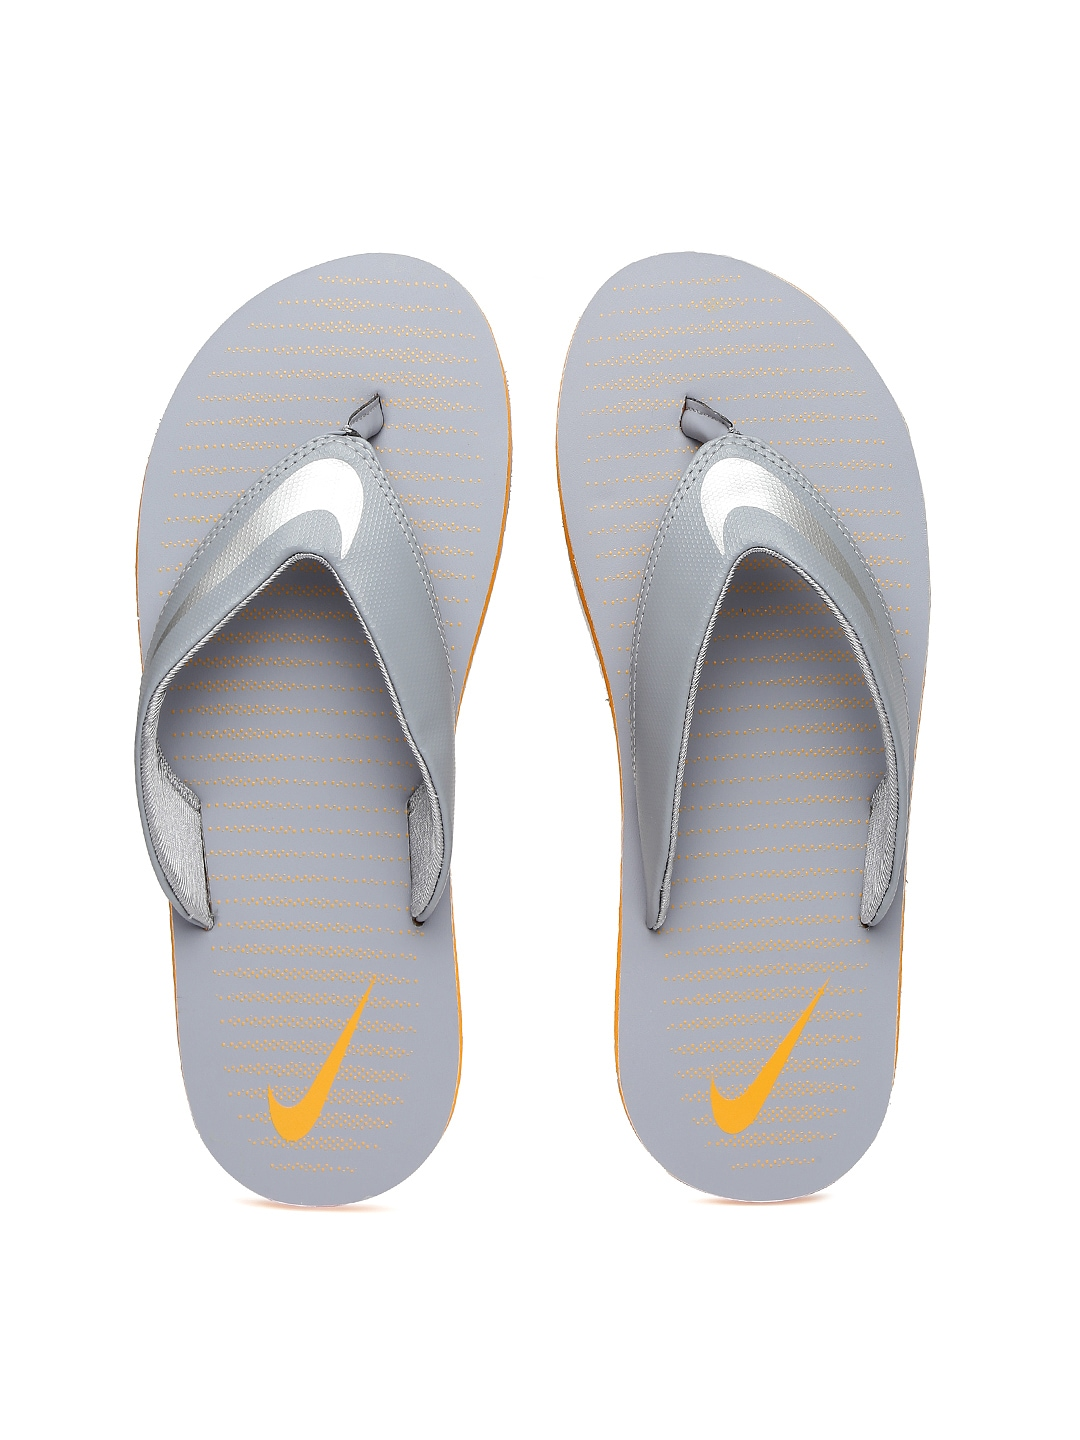 015558145563fd Nike Chroma Thong Flip Flops - Buy Nike Chroma Thong Flip Flops online in  India